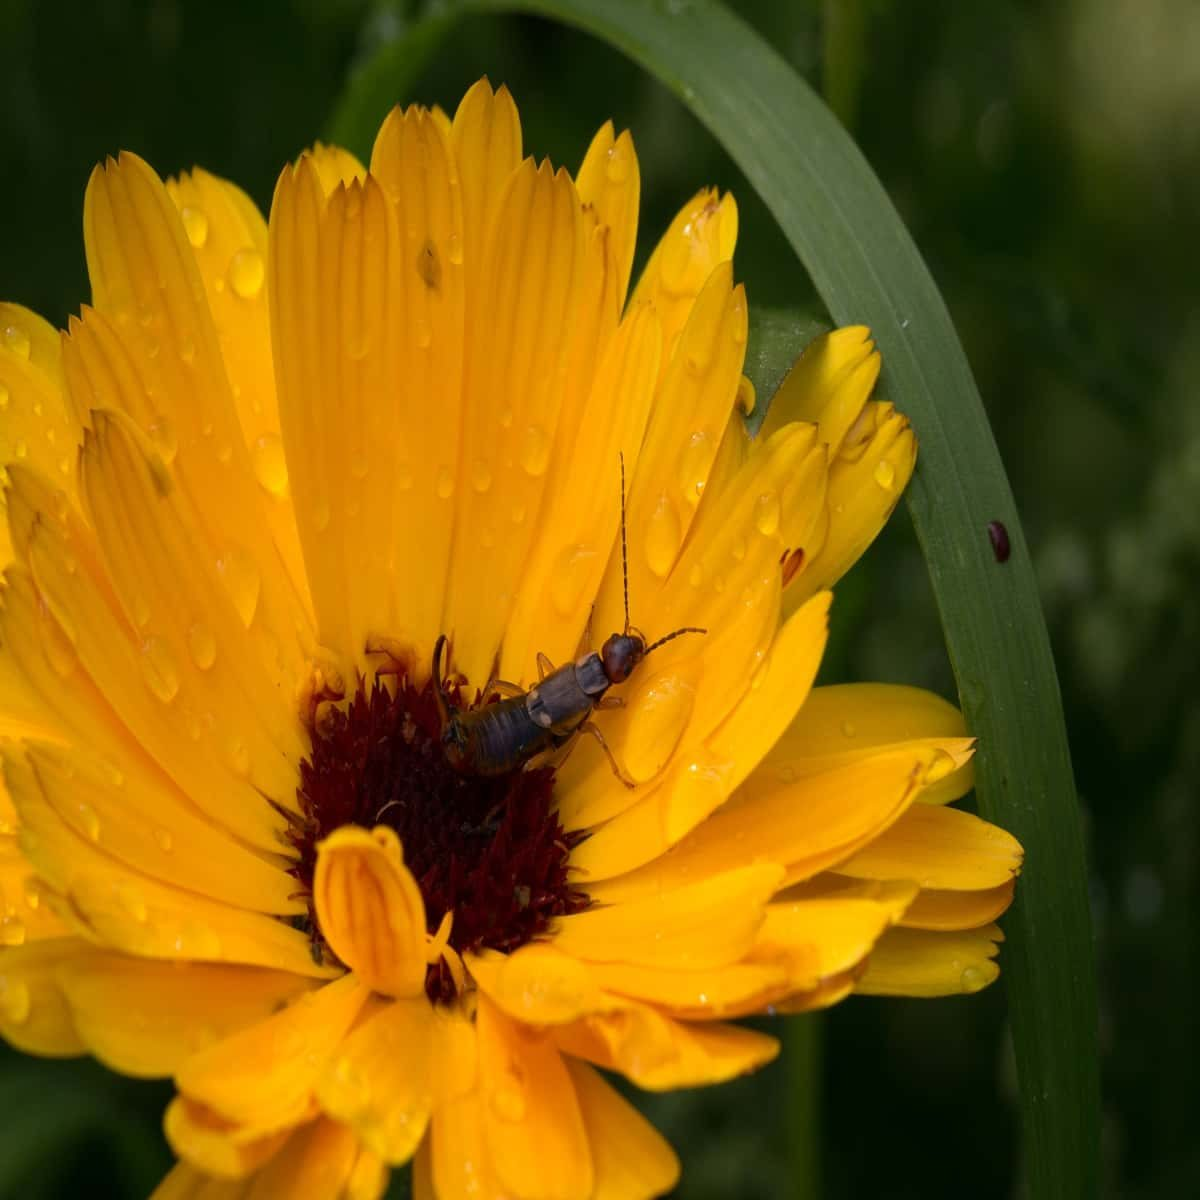 Earwig on a flower